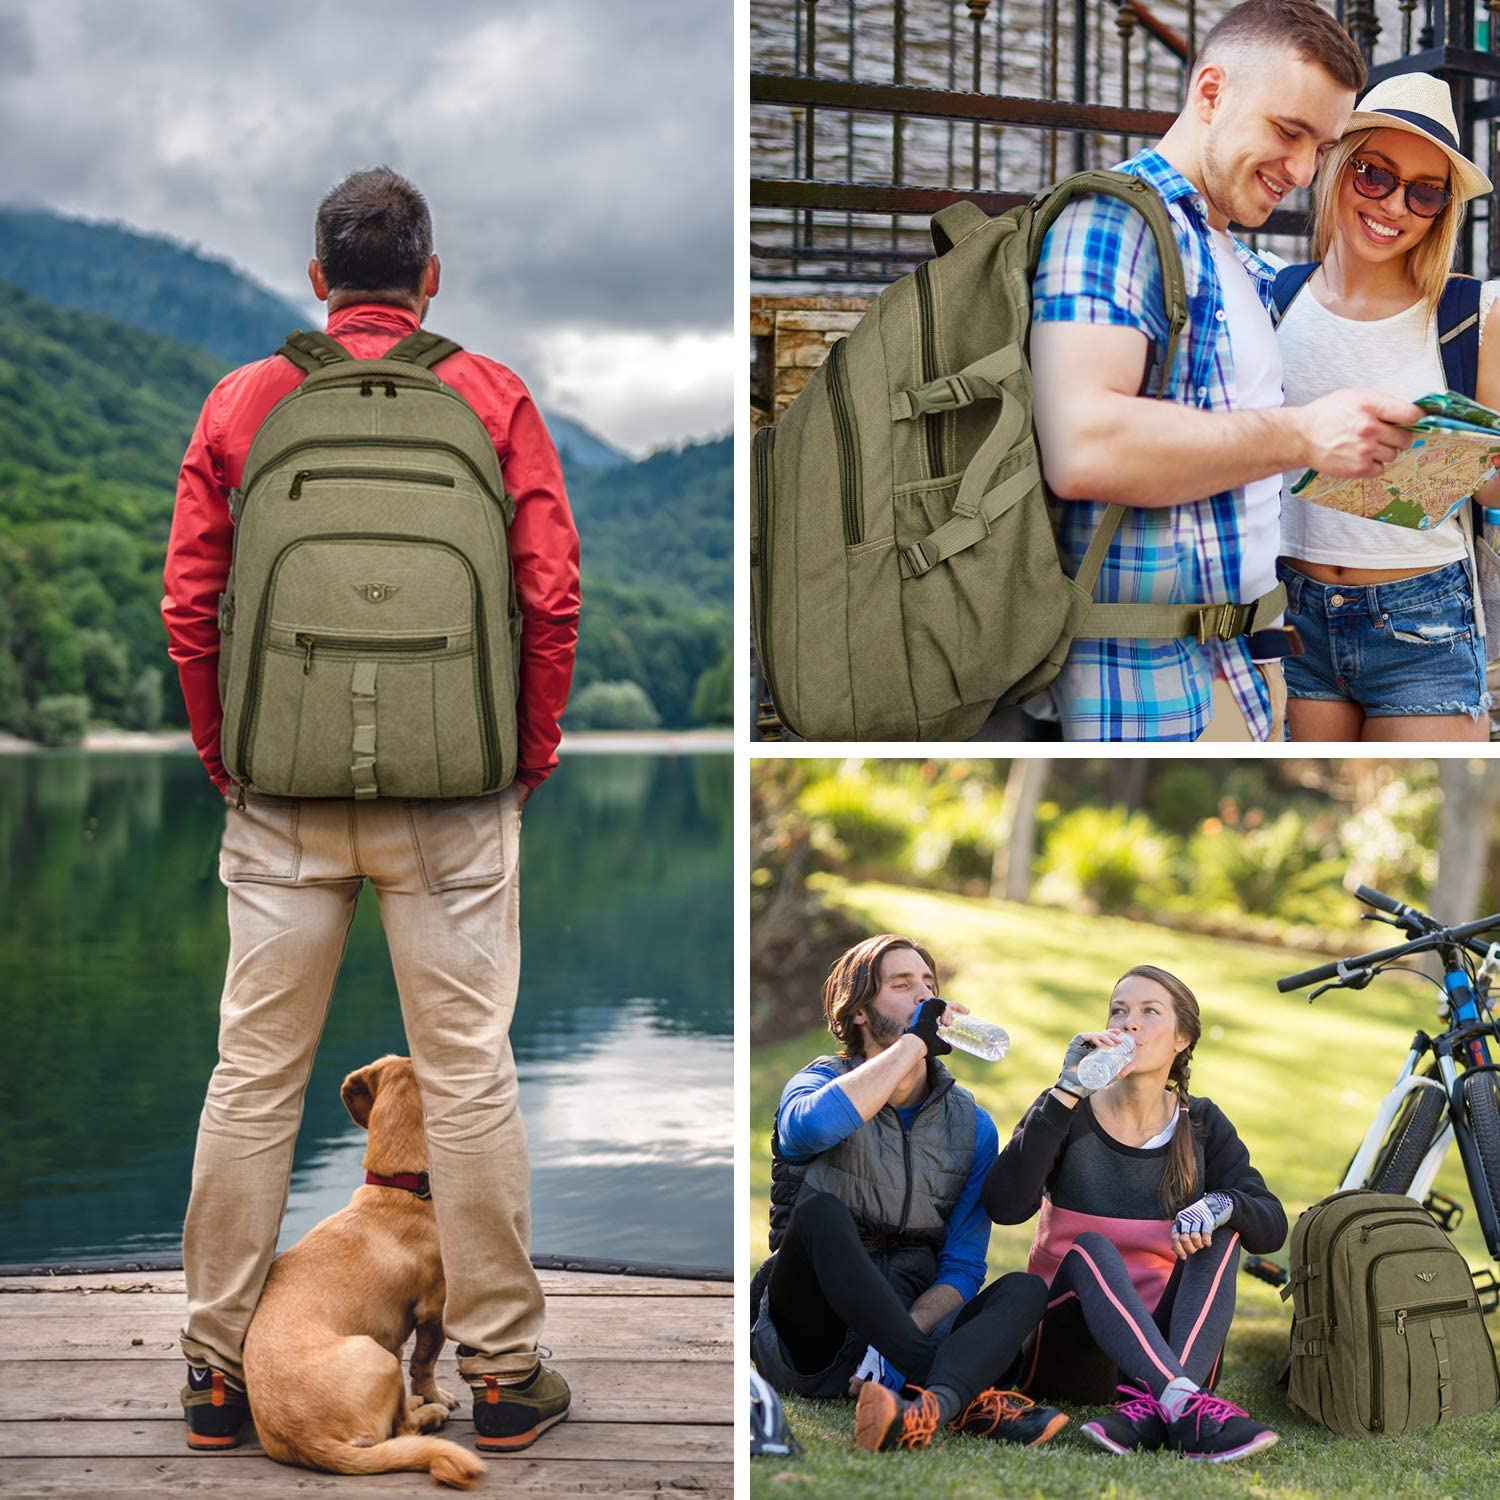 JINLINGDI Outdoor Travel Canvas Backpack Hiking Camping Rucksack Canvas Laptop Daypack for Men and Women